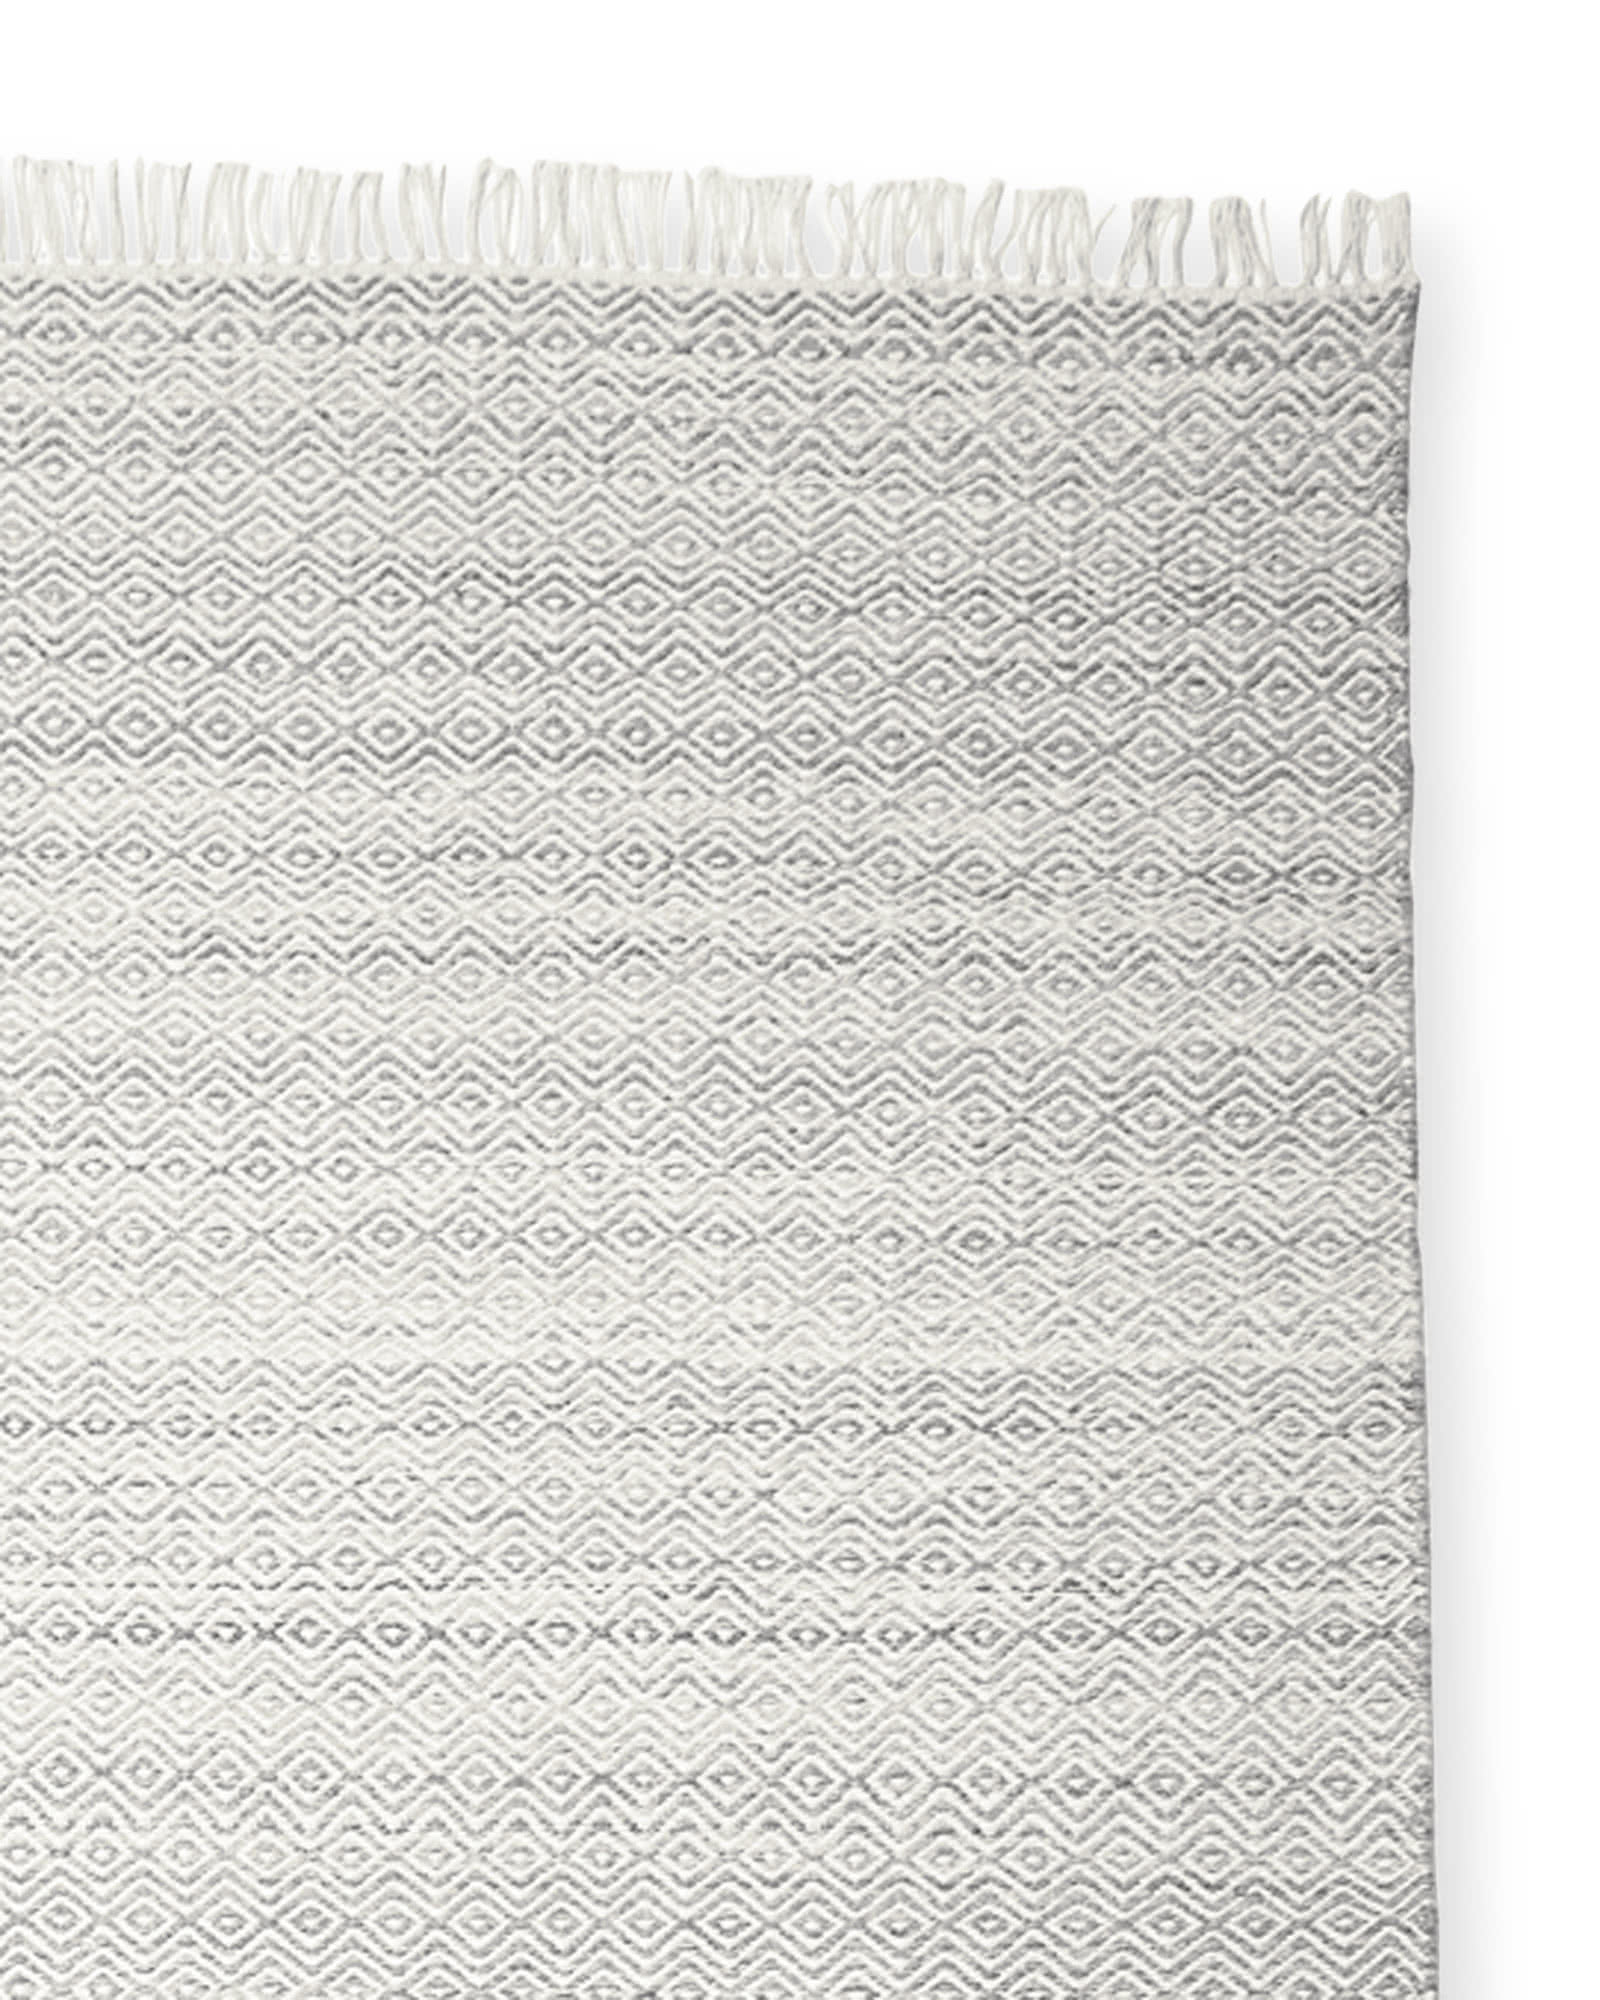 Seaview Rug Swatch, Grey